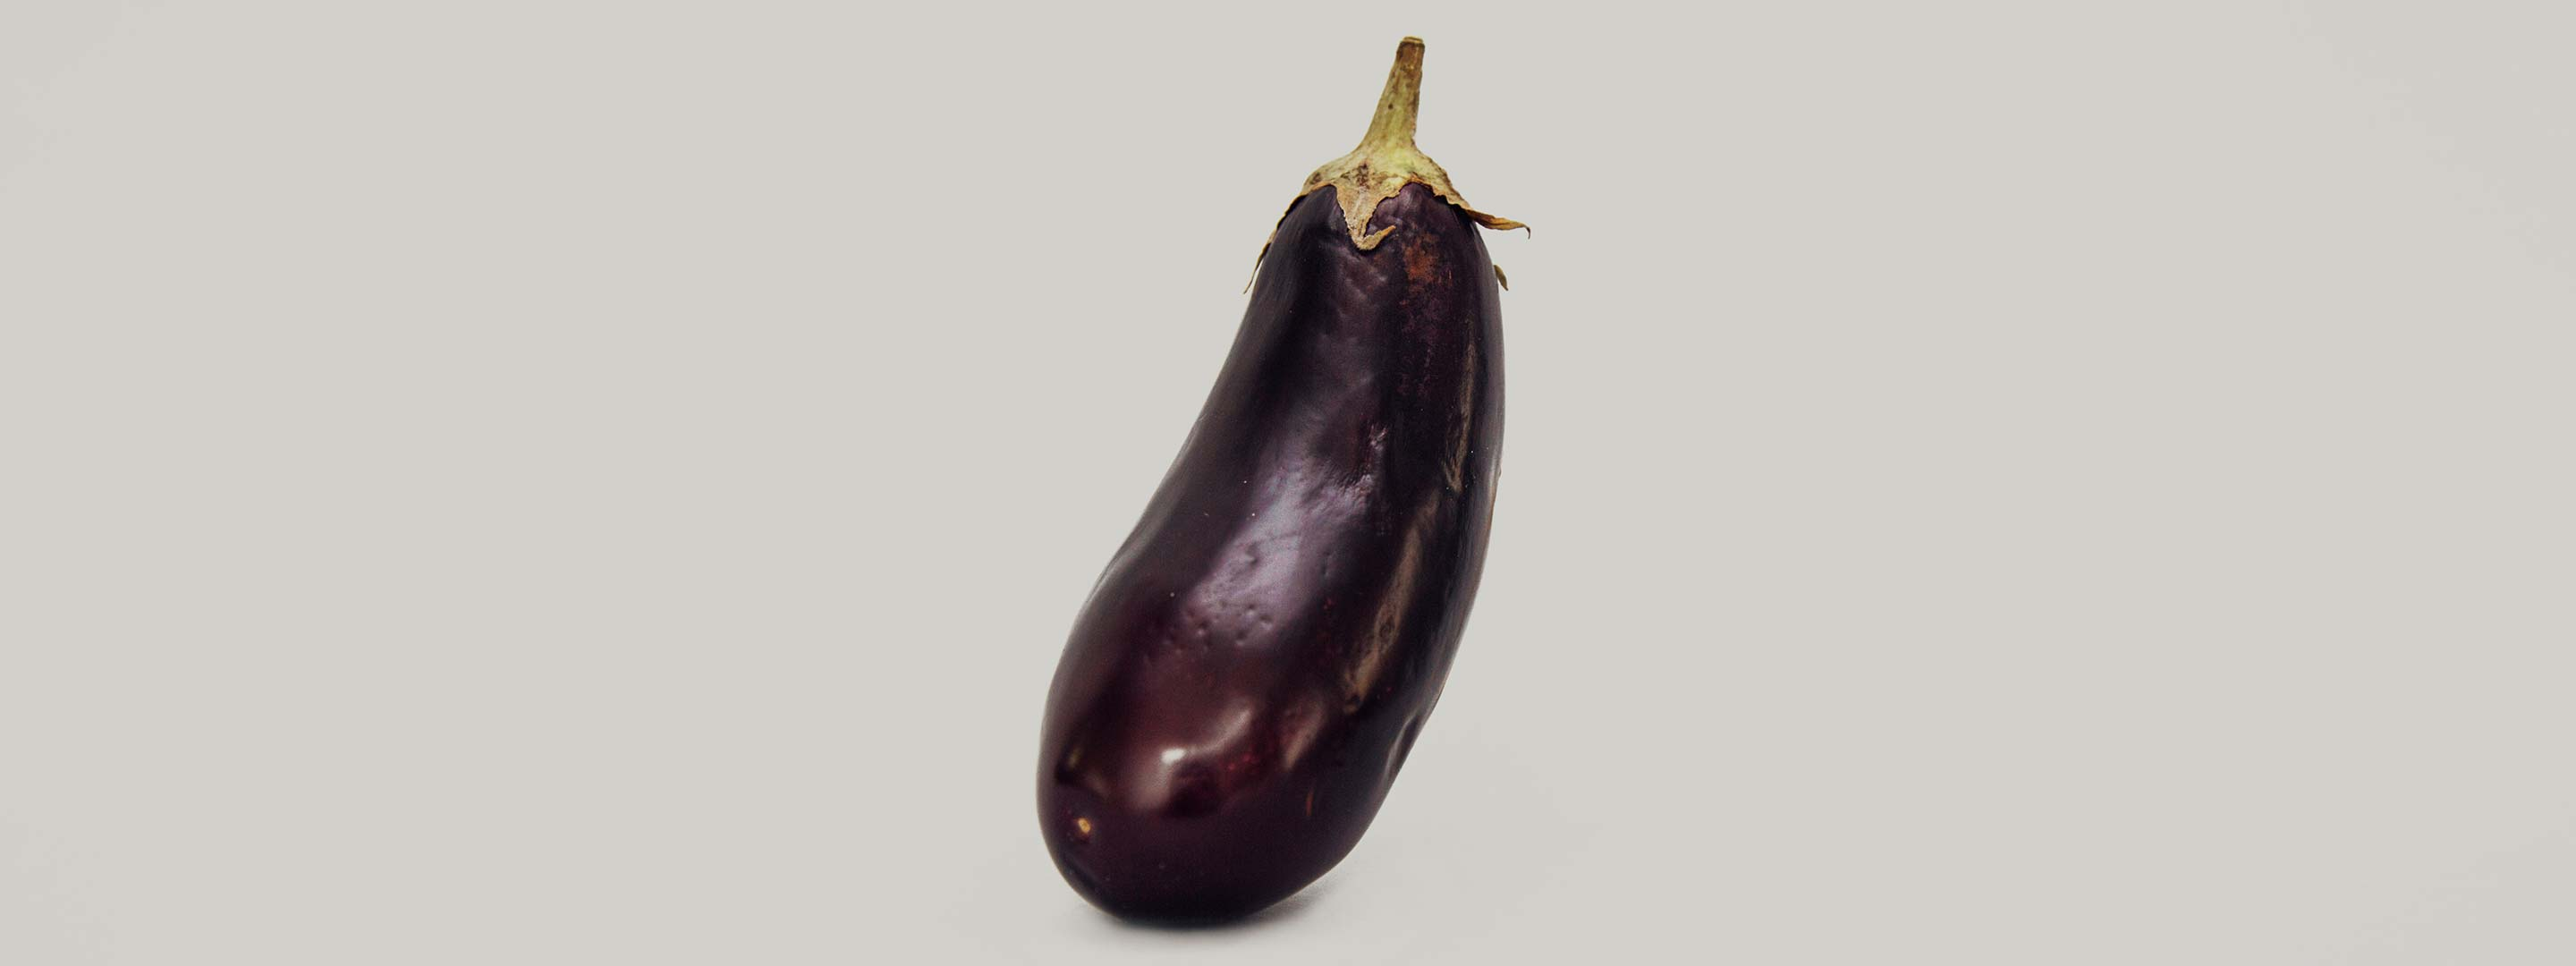 Photo of an eggplant